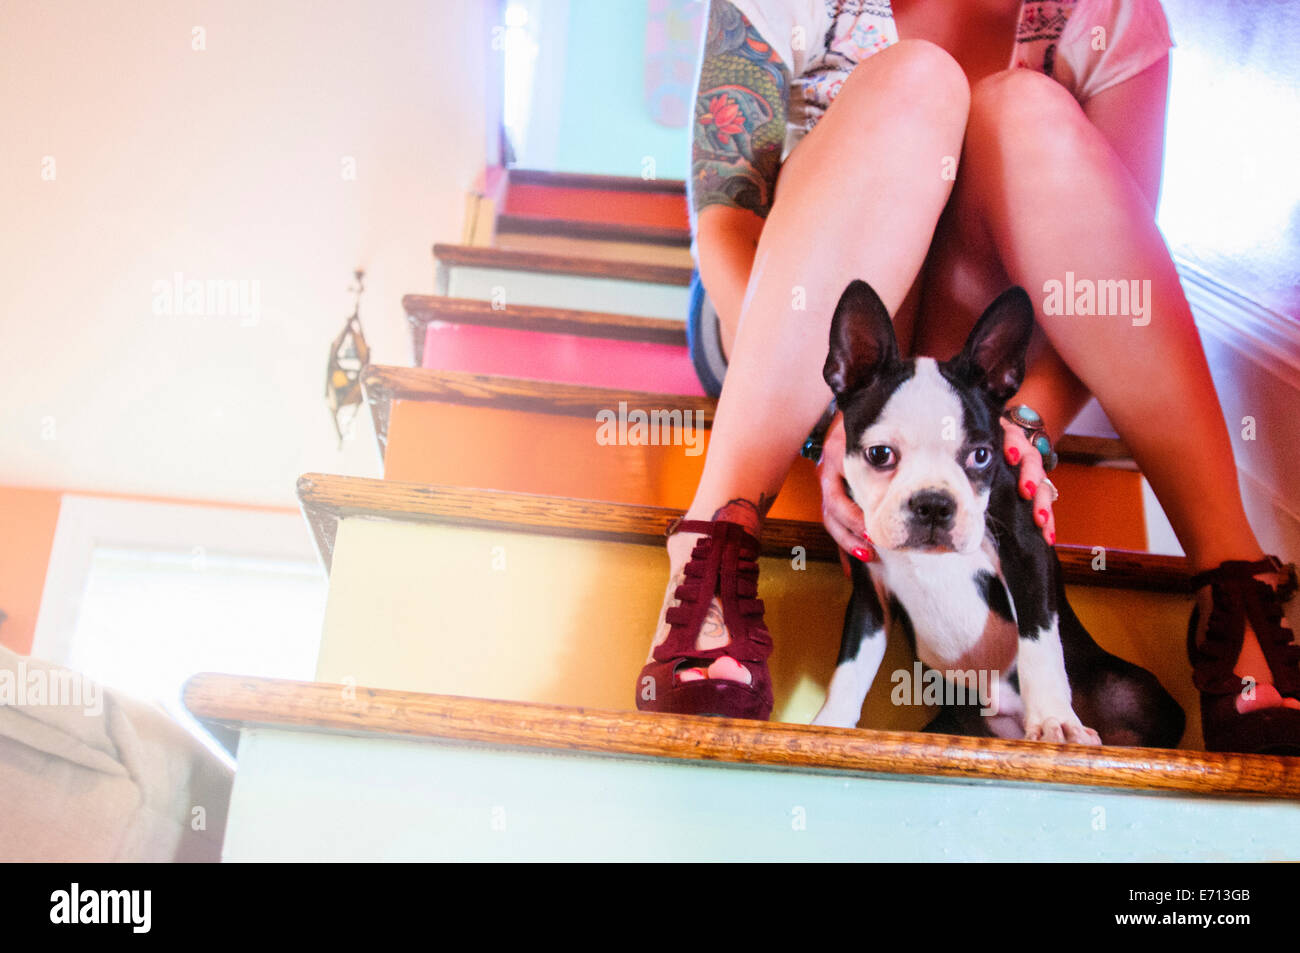 Cropped shot of young woman sitting on colorful staircase with dog - Stock Image